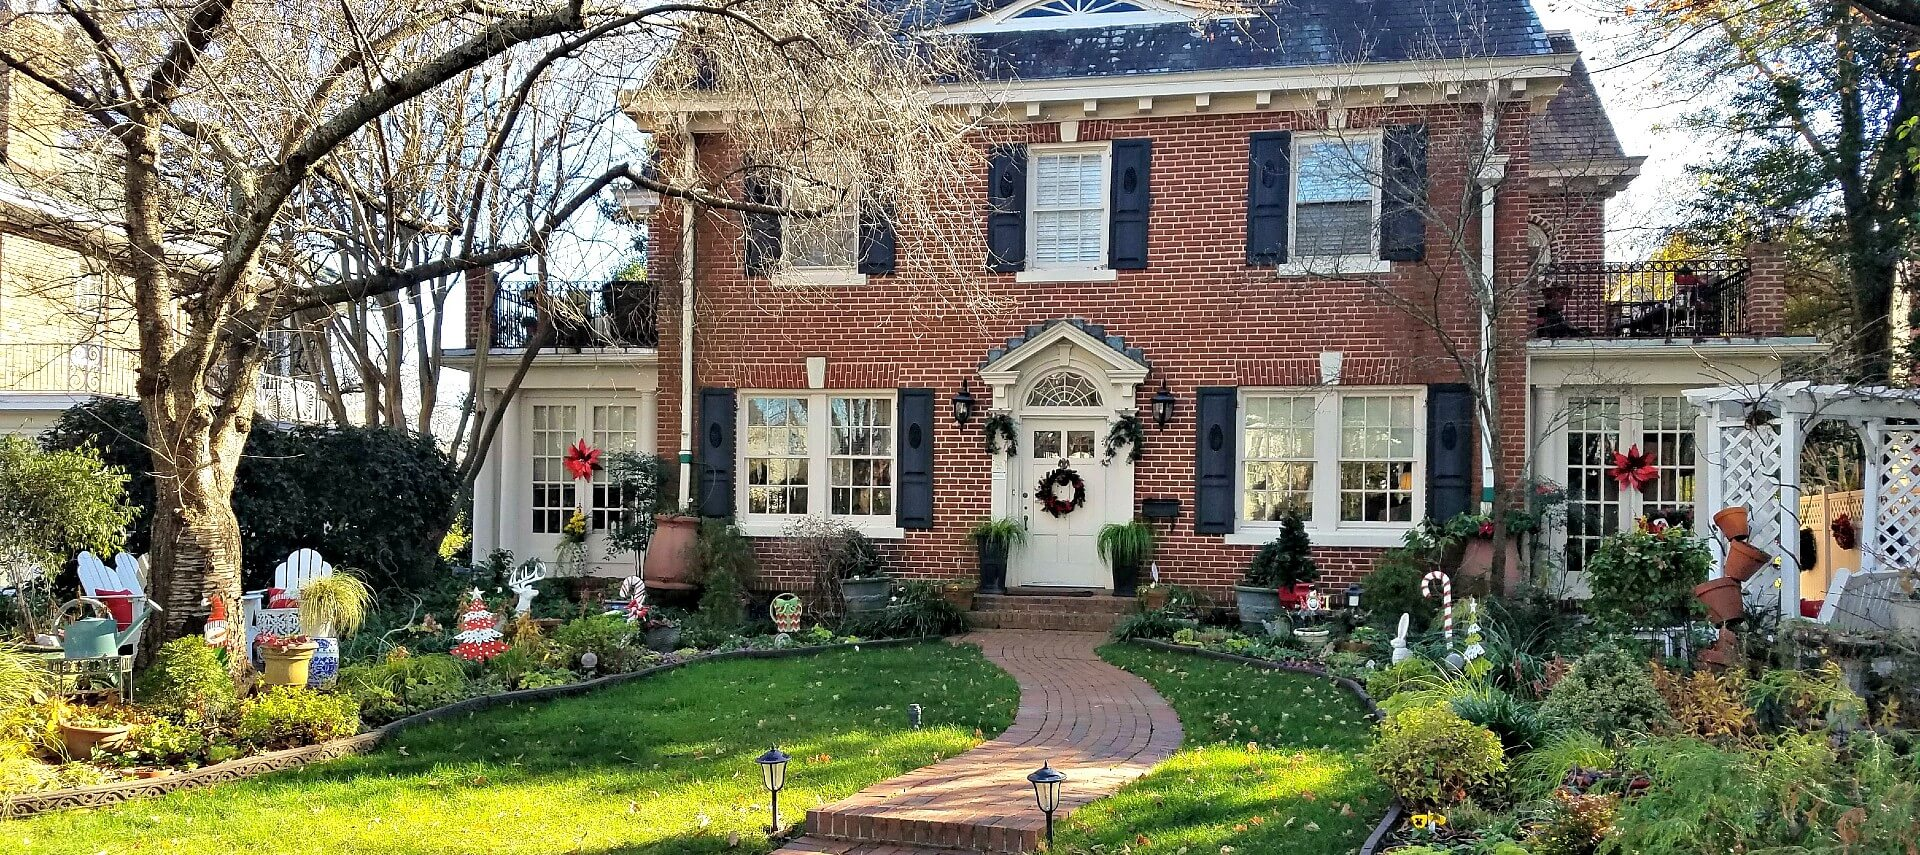 Front door of brick colonial house with fall wreath and decorations.